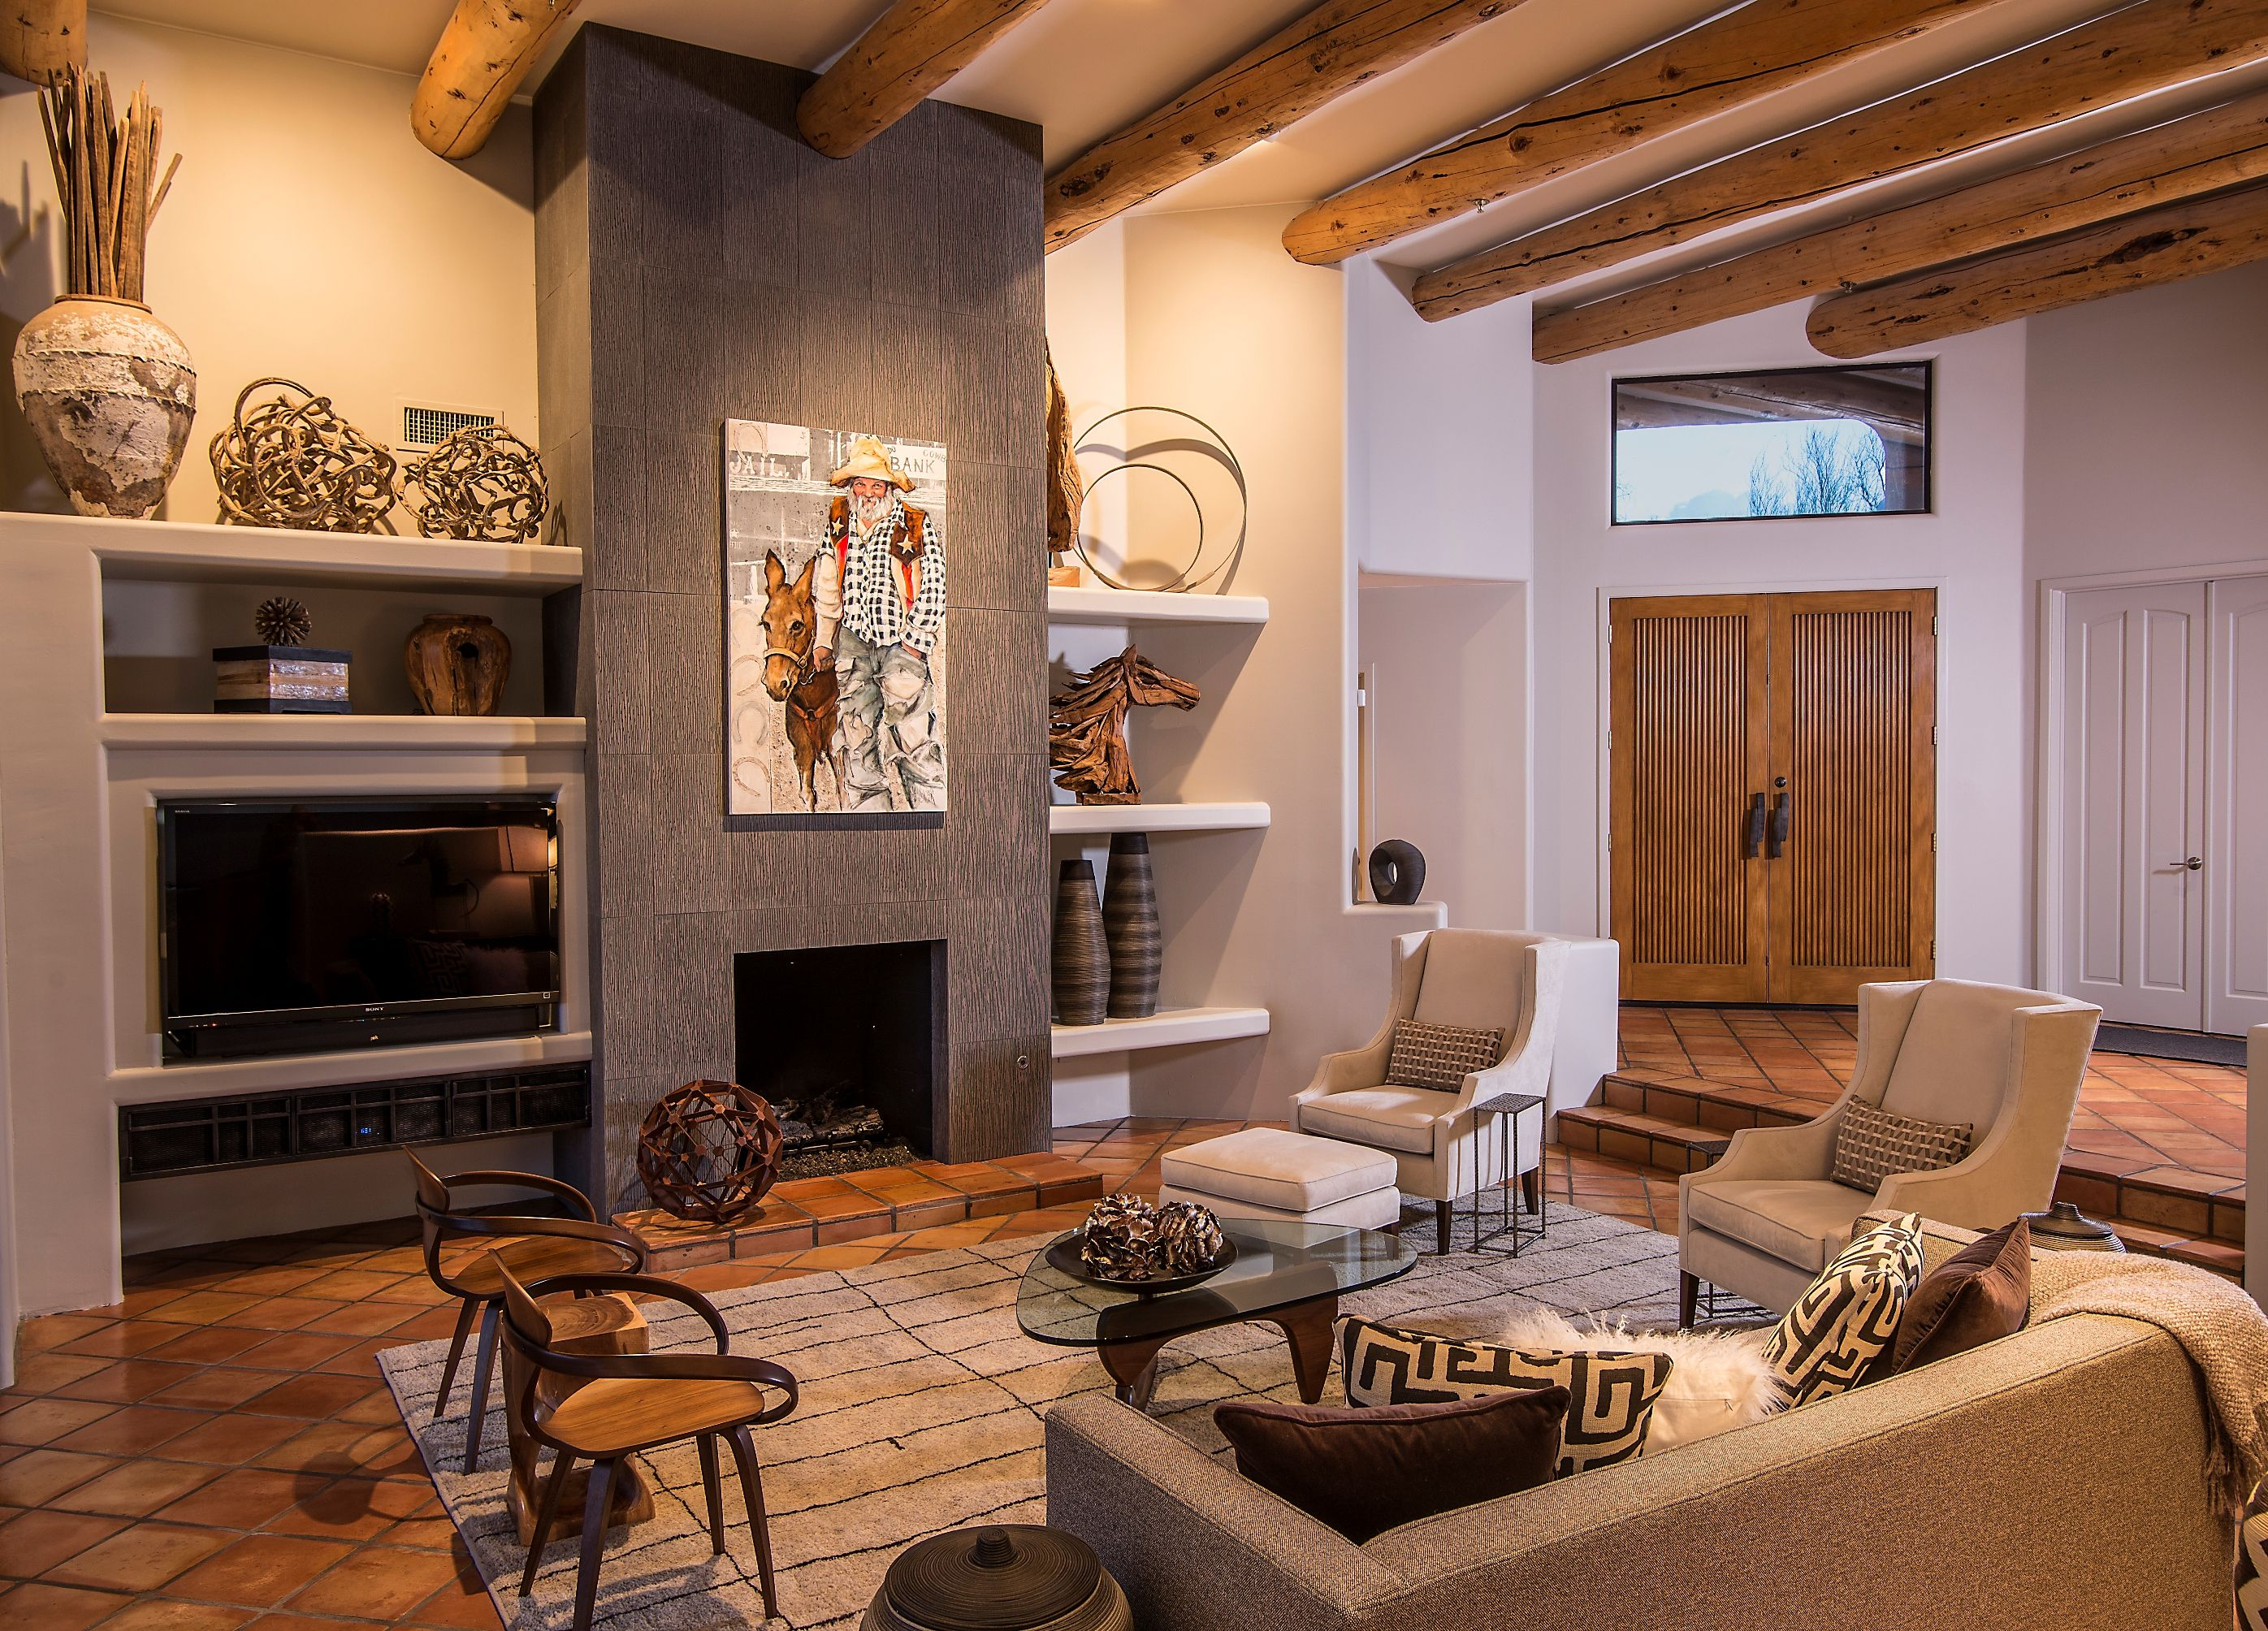 Keeping The Original Flooring And Timber Wood Beams Grounded The